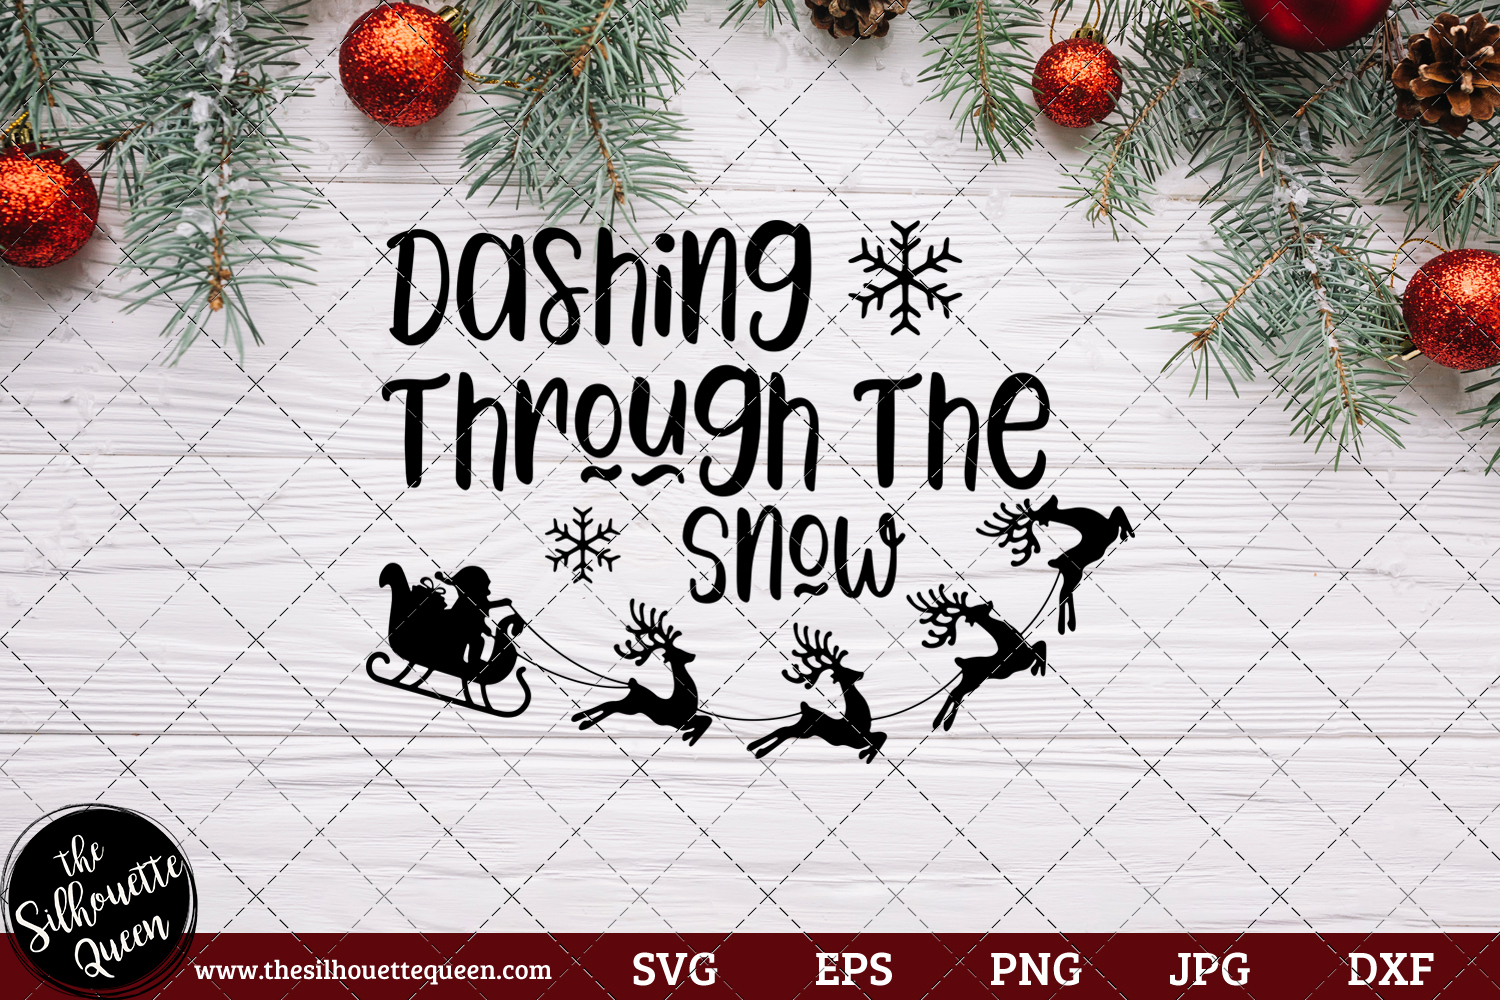 Download Free Dashing Through The Snow Saying Graphic By for Cricut Explore, Silhouette and other cutting machines.